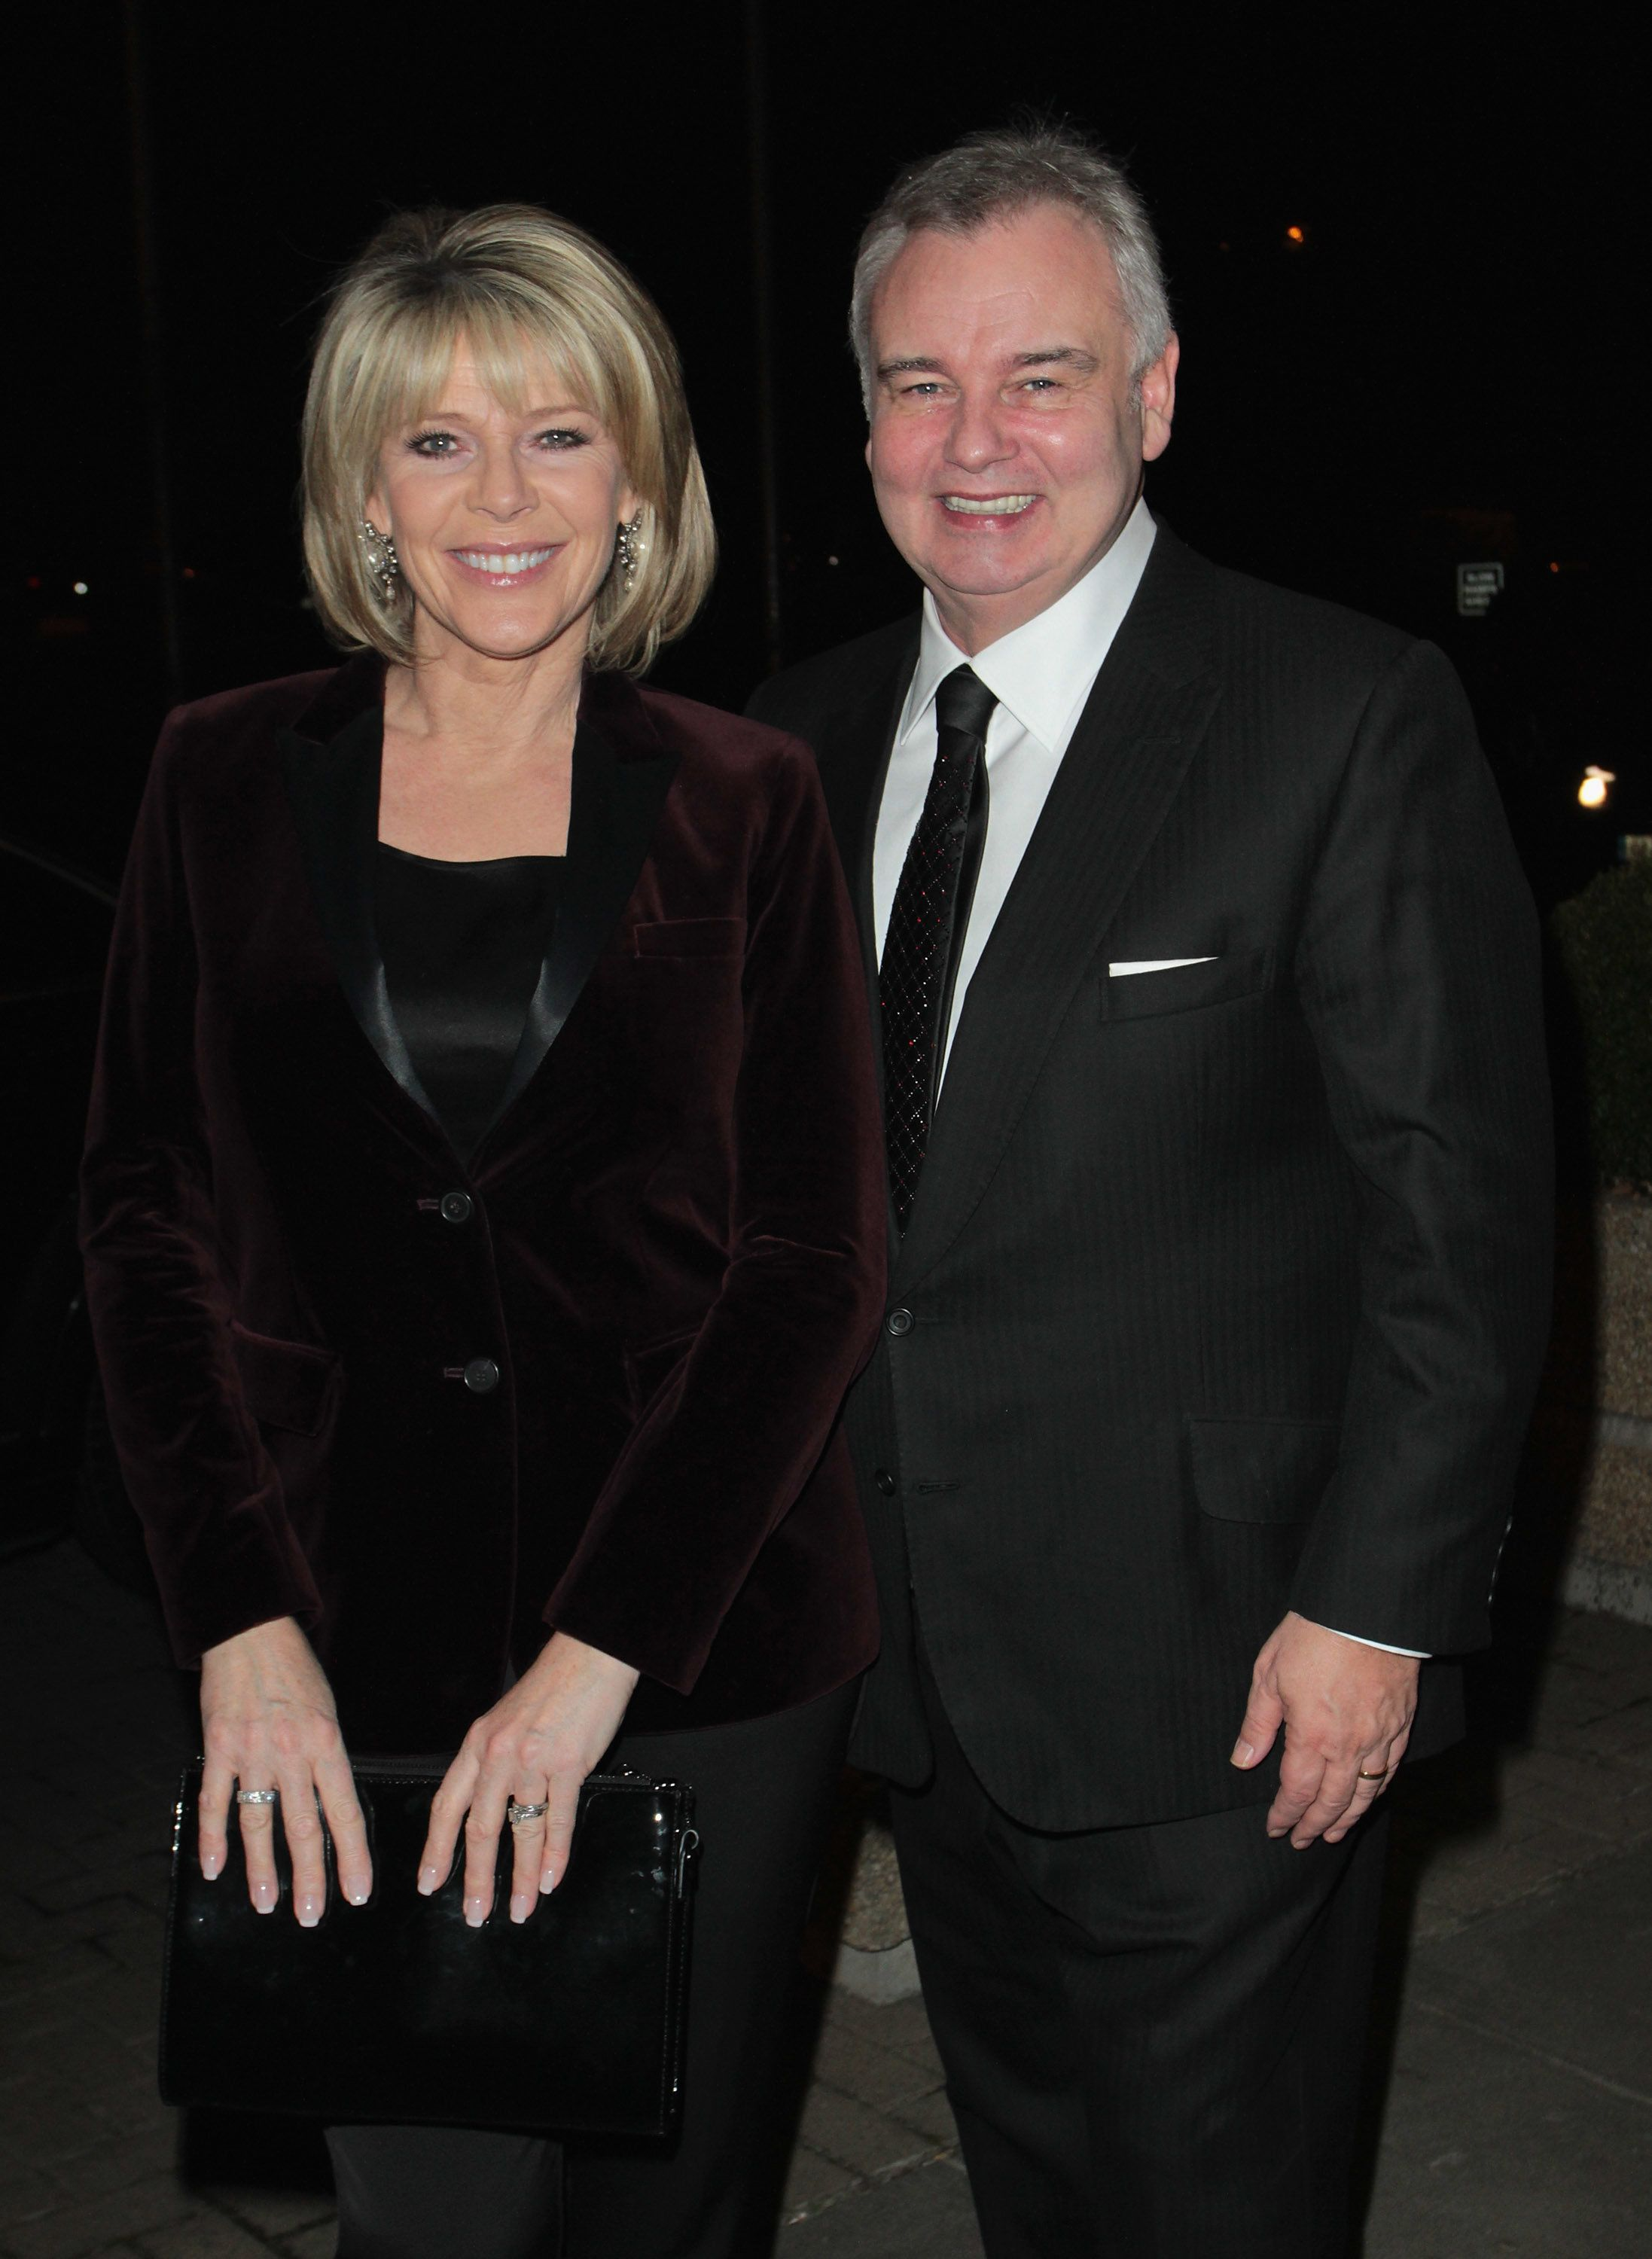 Ruth Langsford Reveals The One TV Job That Would End Her